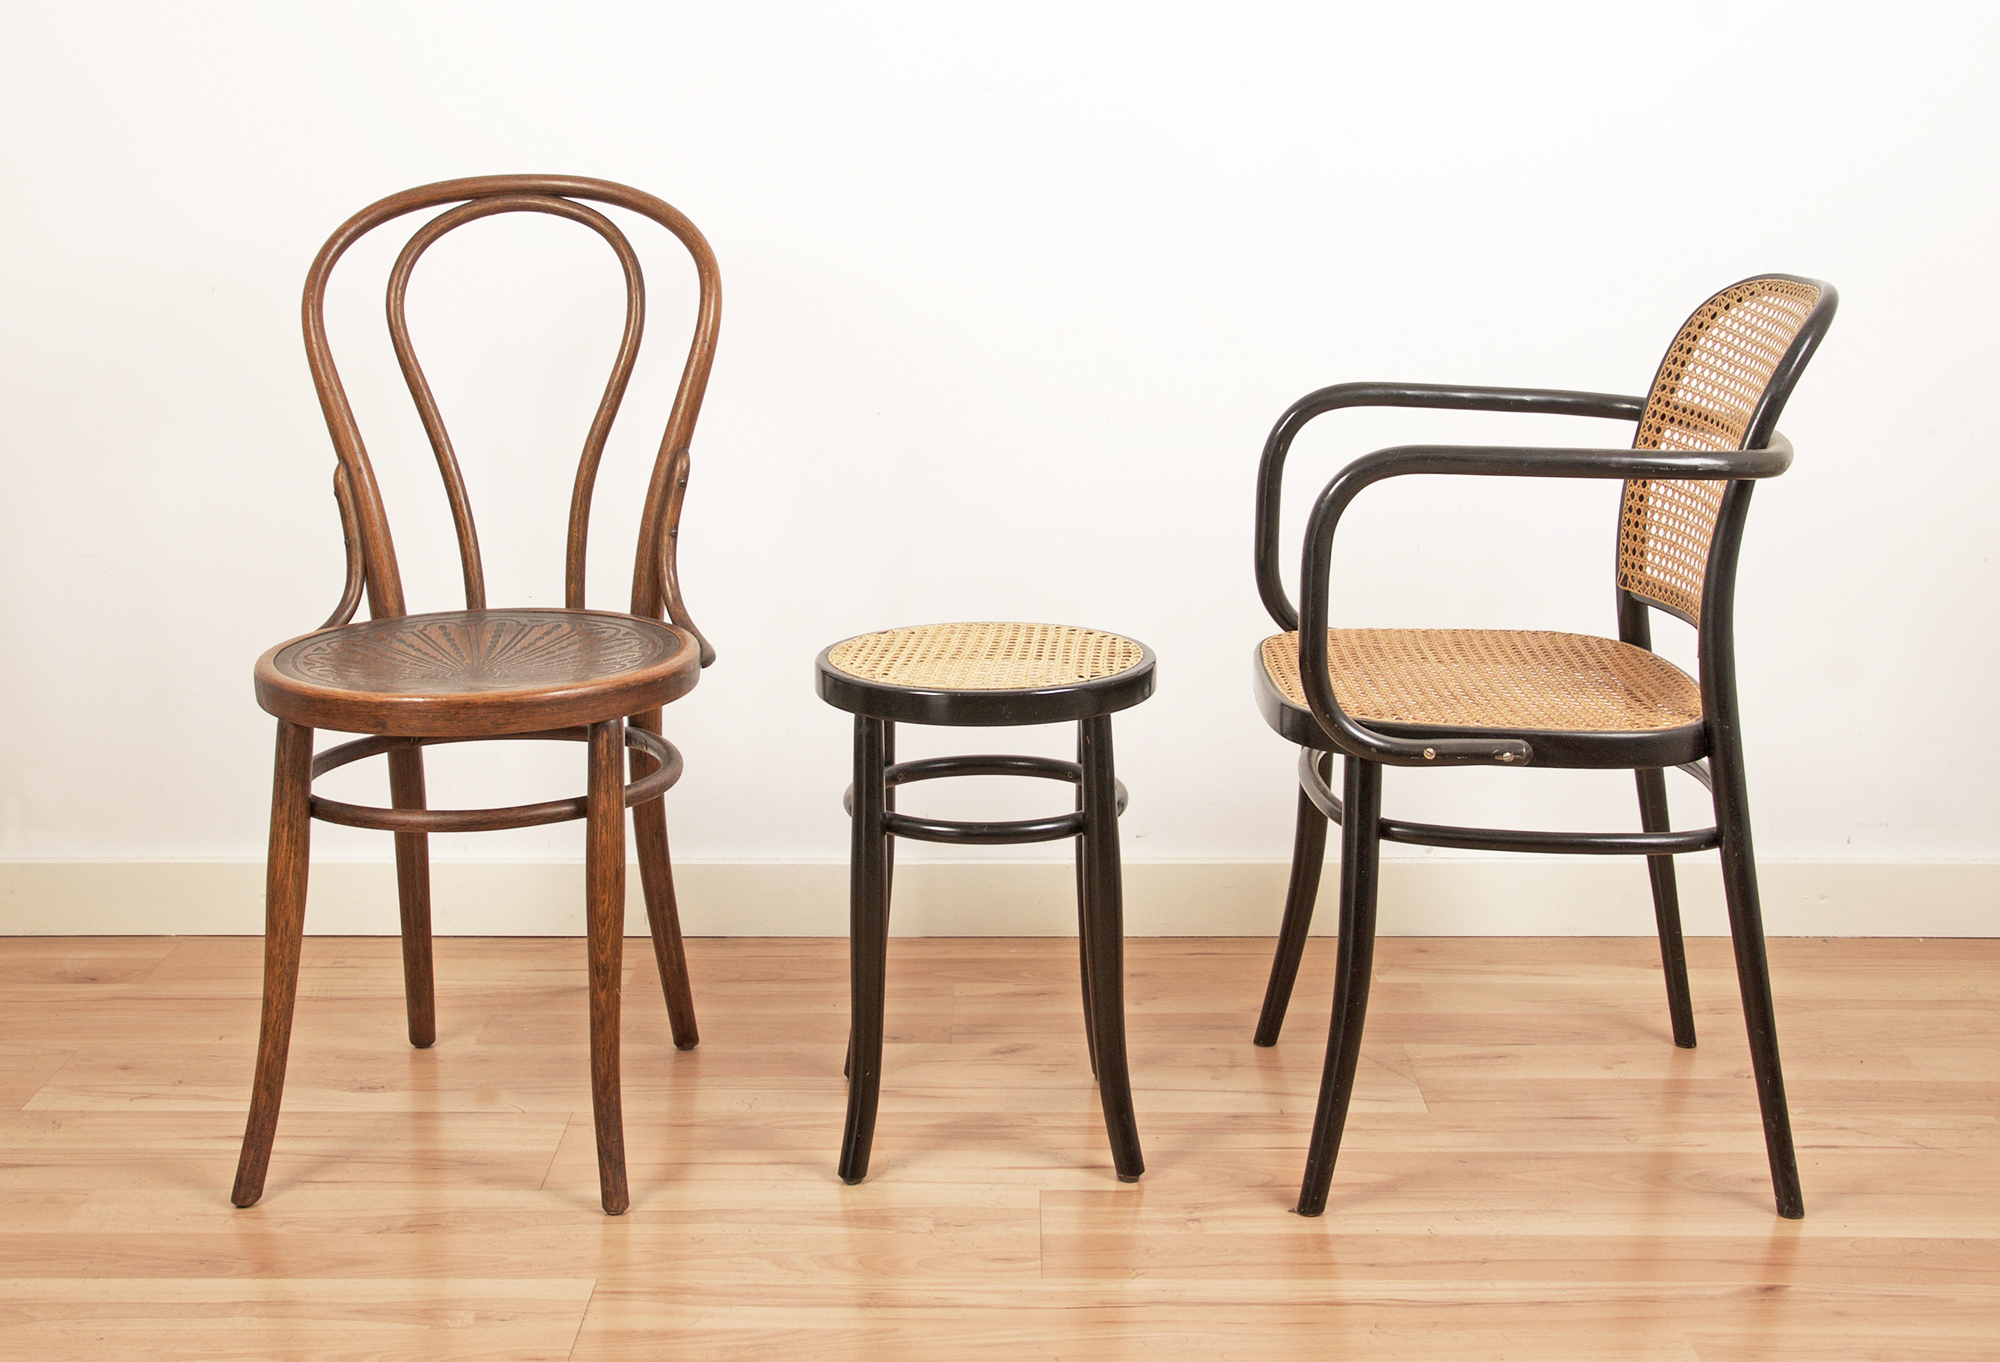 A Brief History of Bentwood Furniture